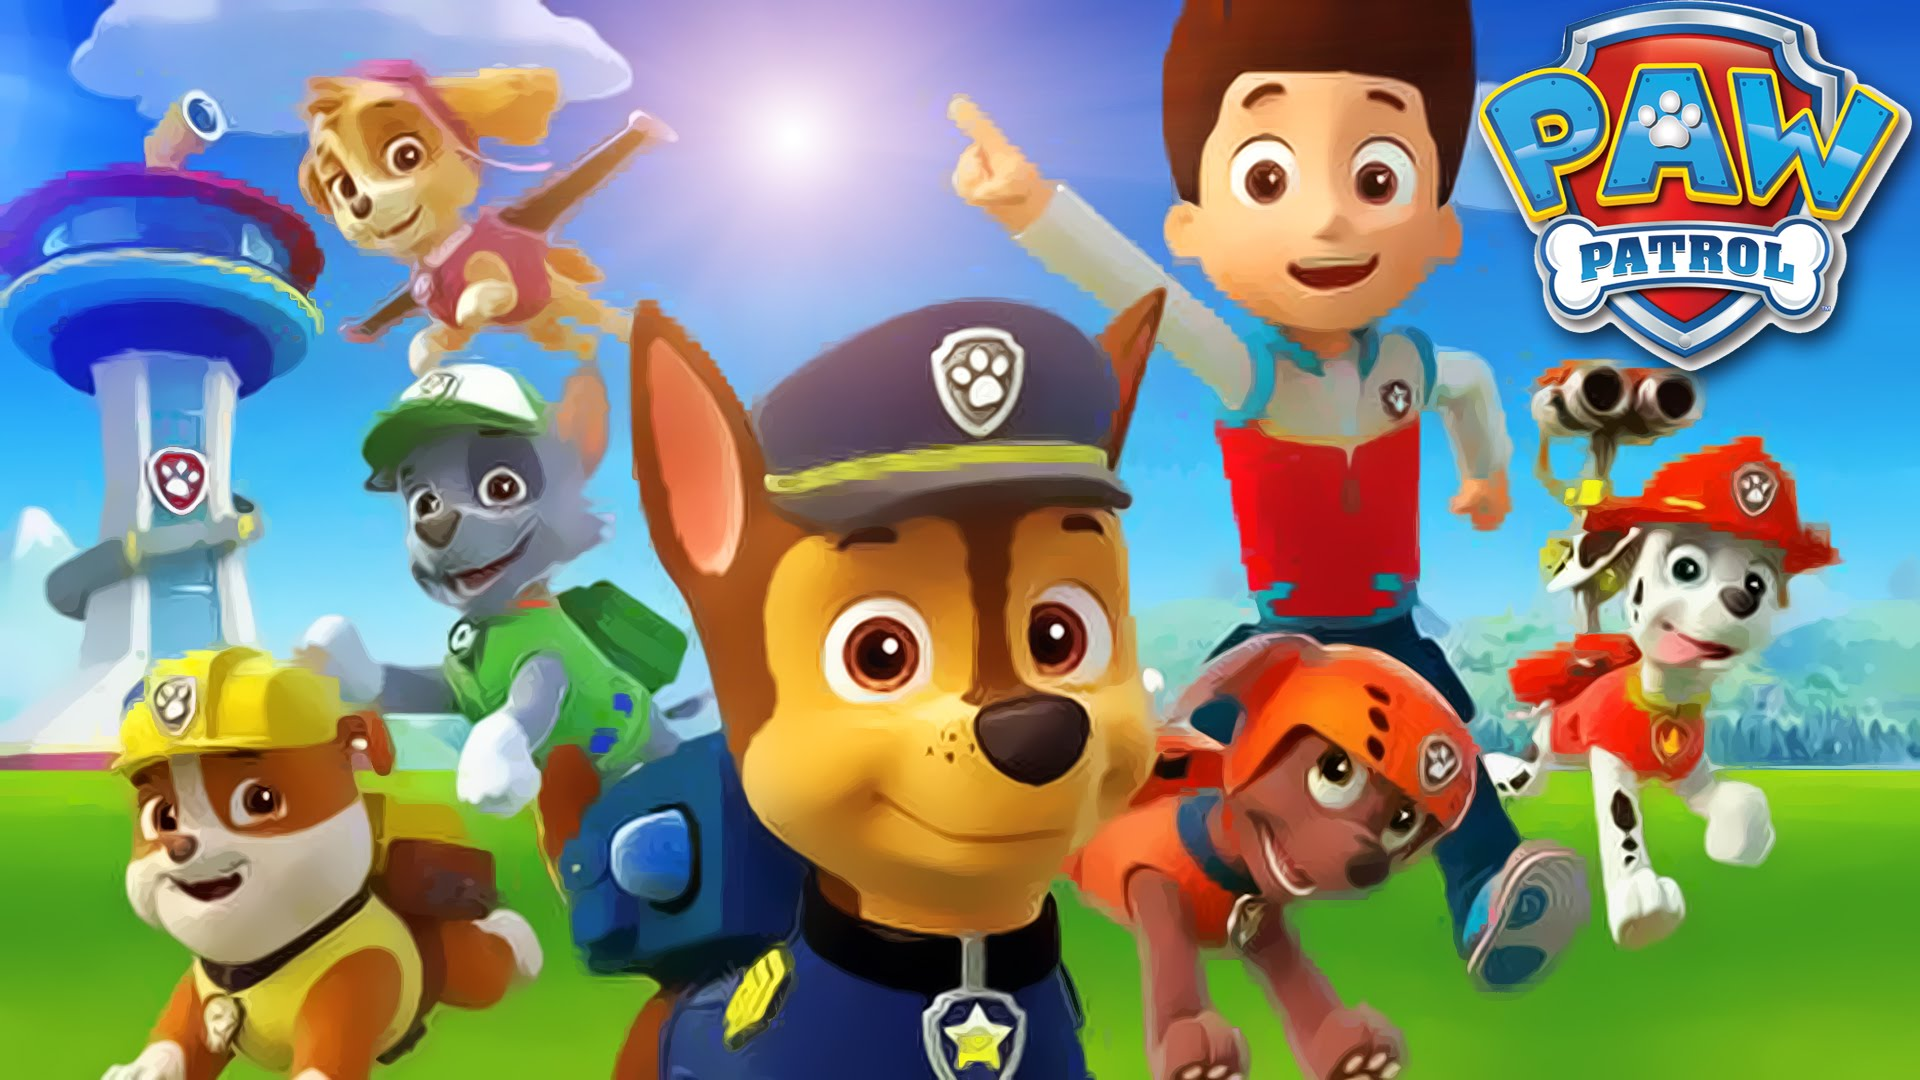 Full HD Paw Patrol Images, Wallpapers for Desktop, HBC paw print wallpaper  eBay 1920x1080